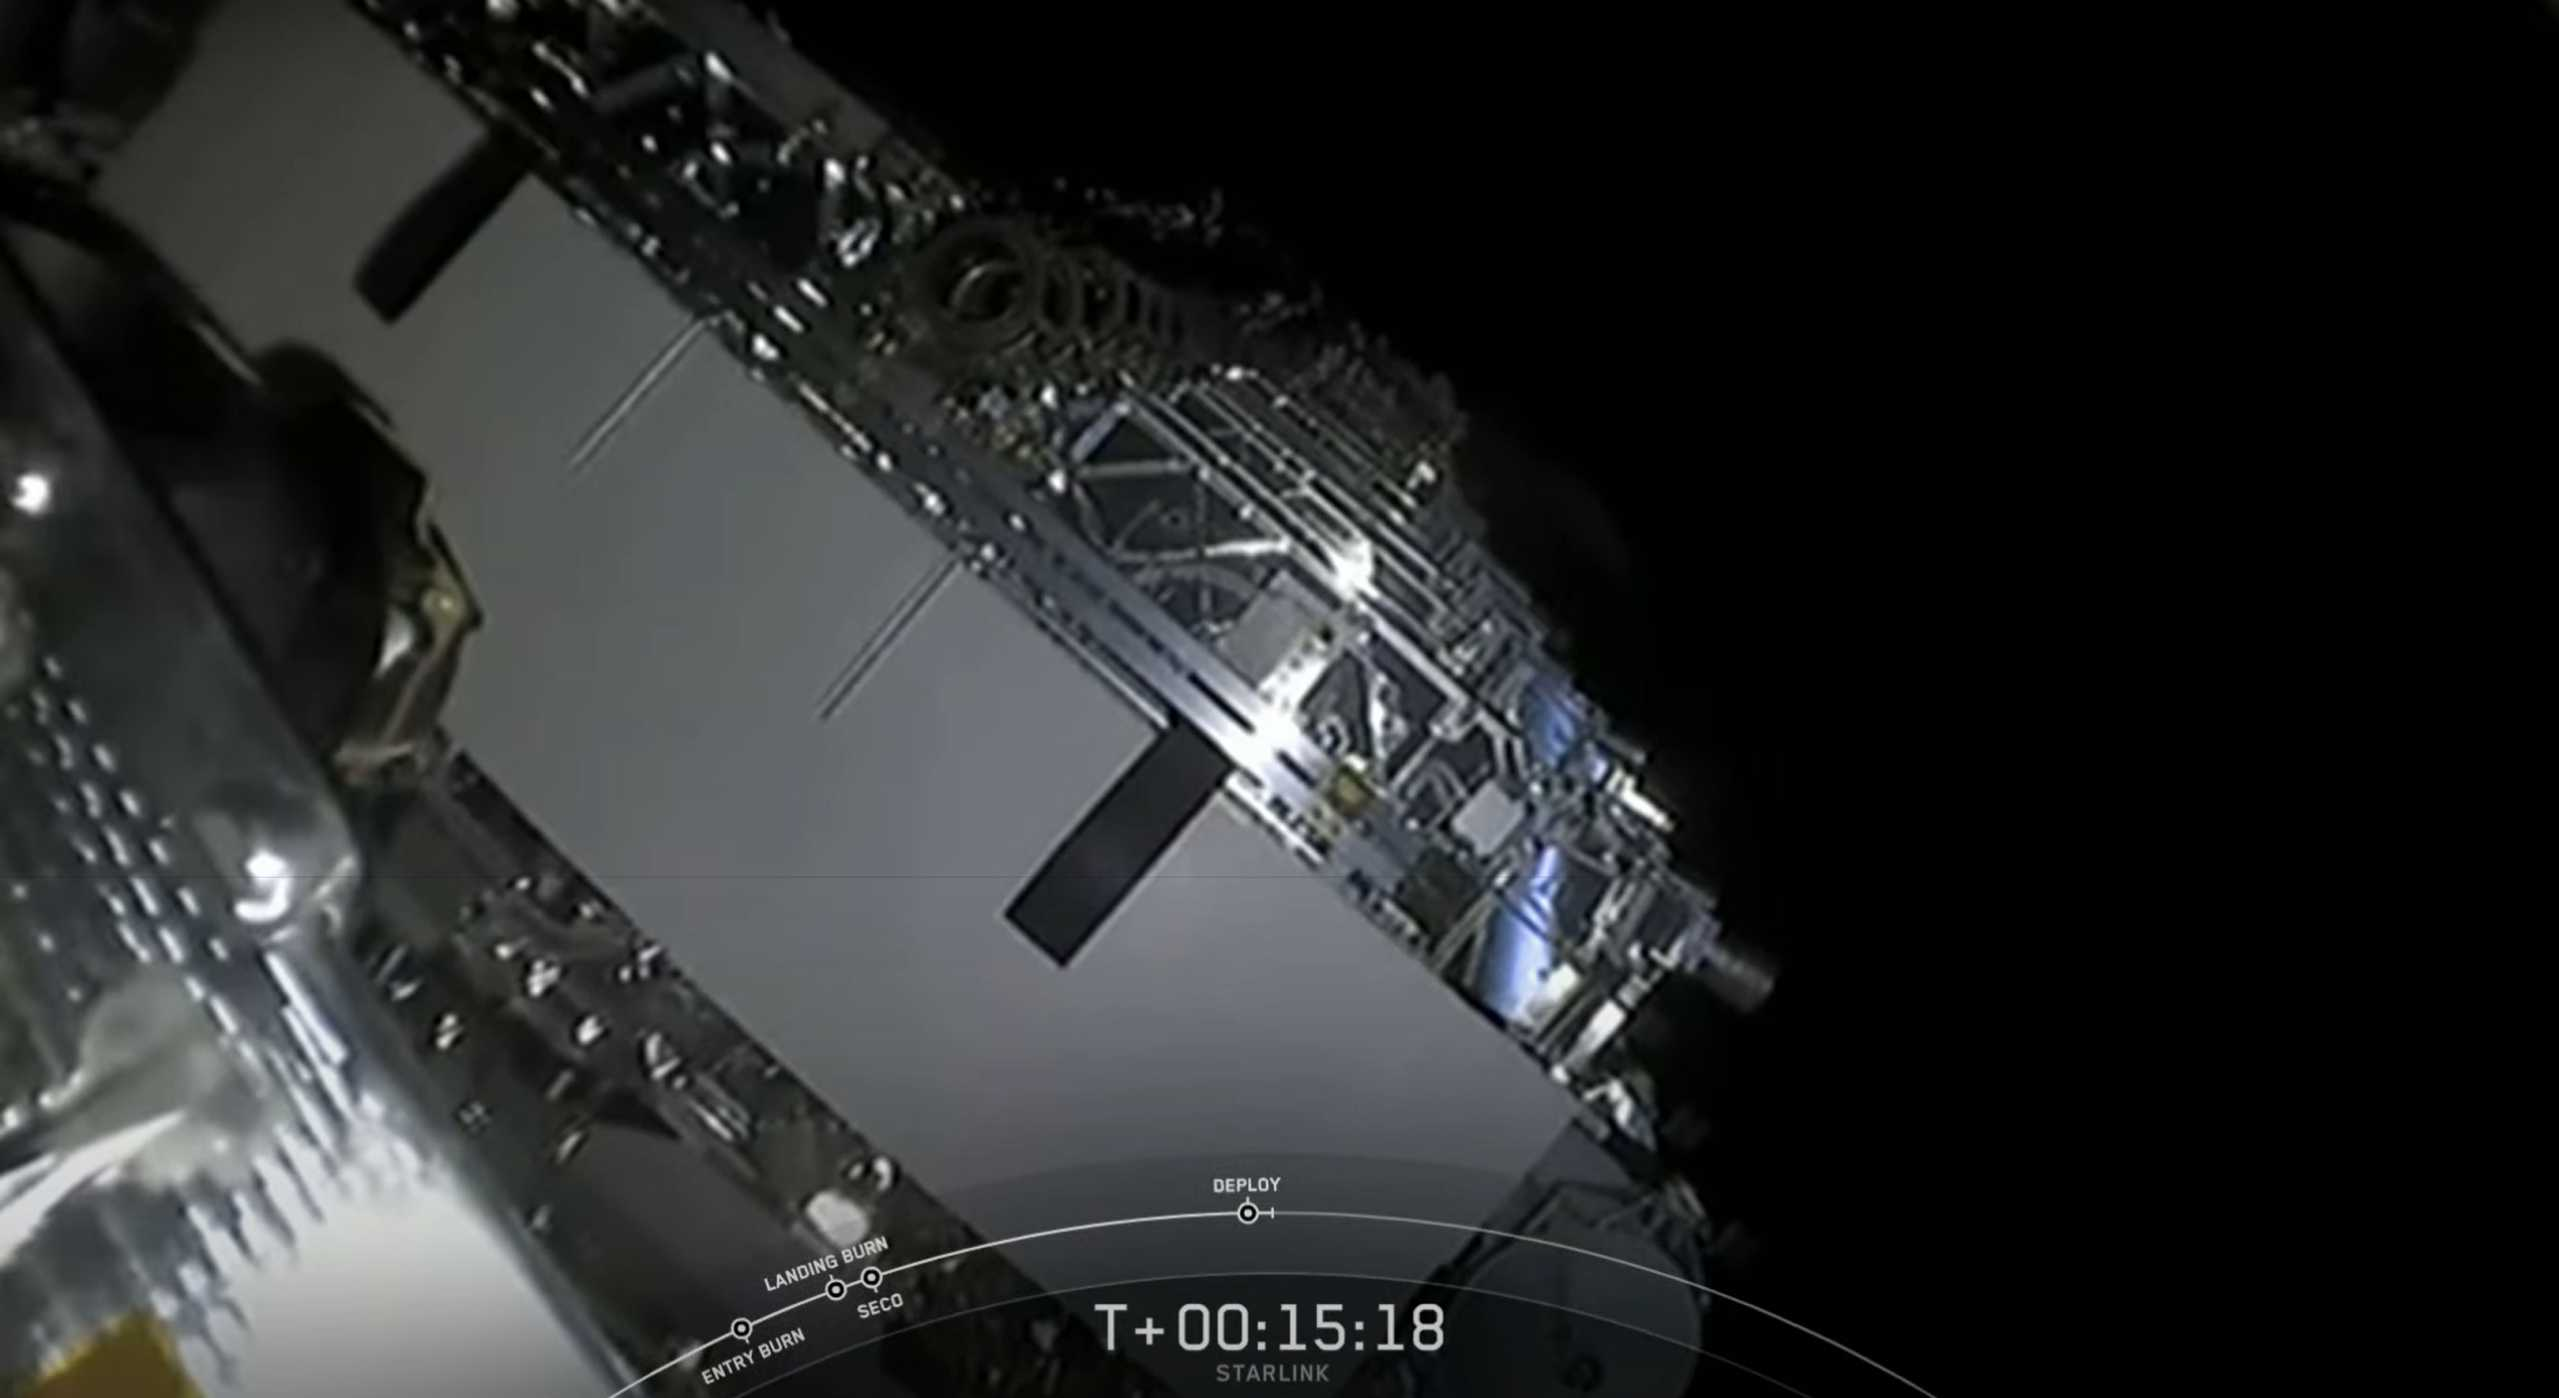 Starlink-8 Falcon 9 B1049 LC-40 060320 webcast (SpaceX) satellite deploy 1 (c)